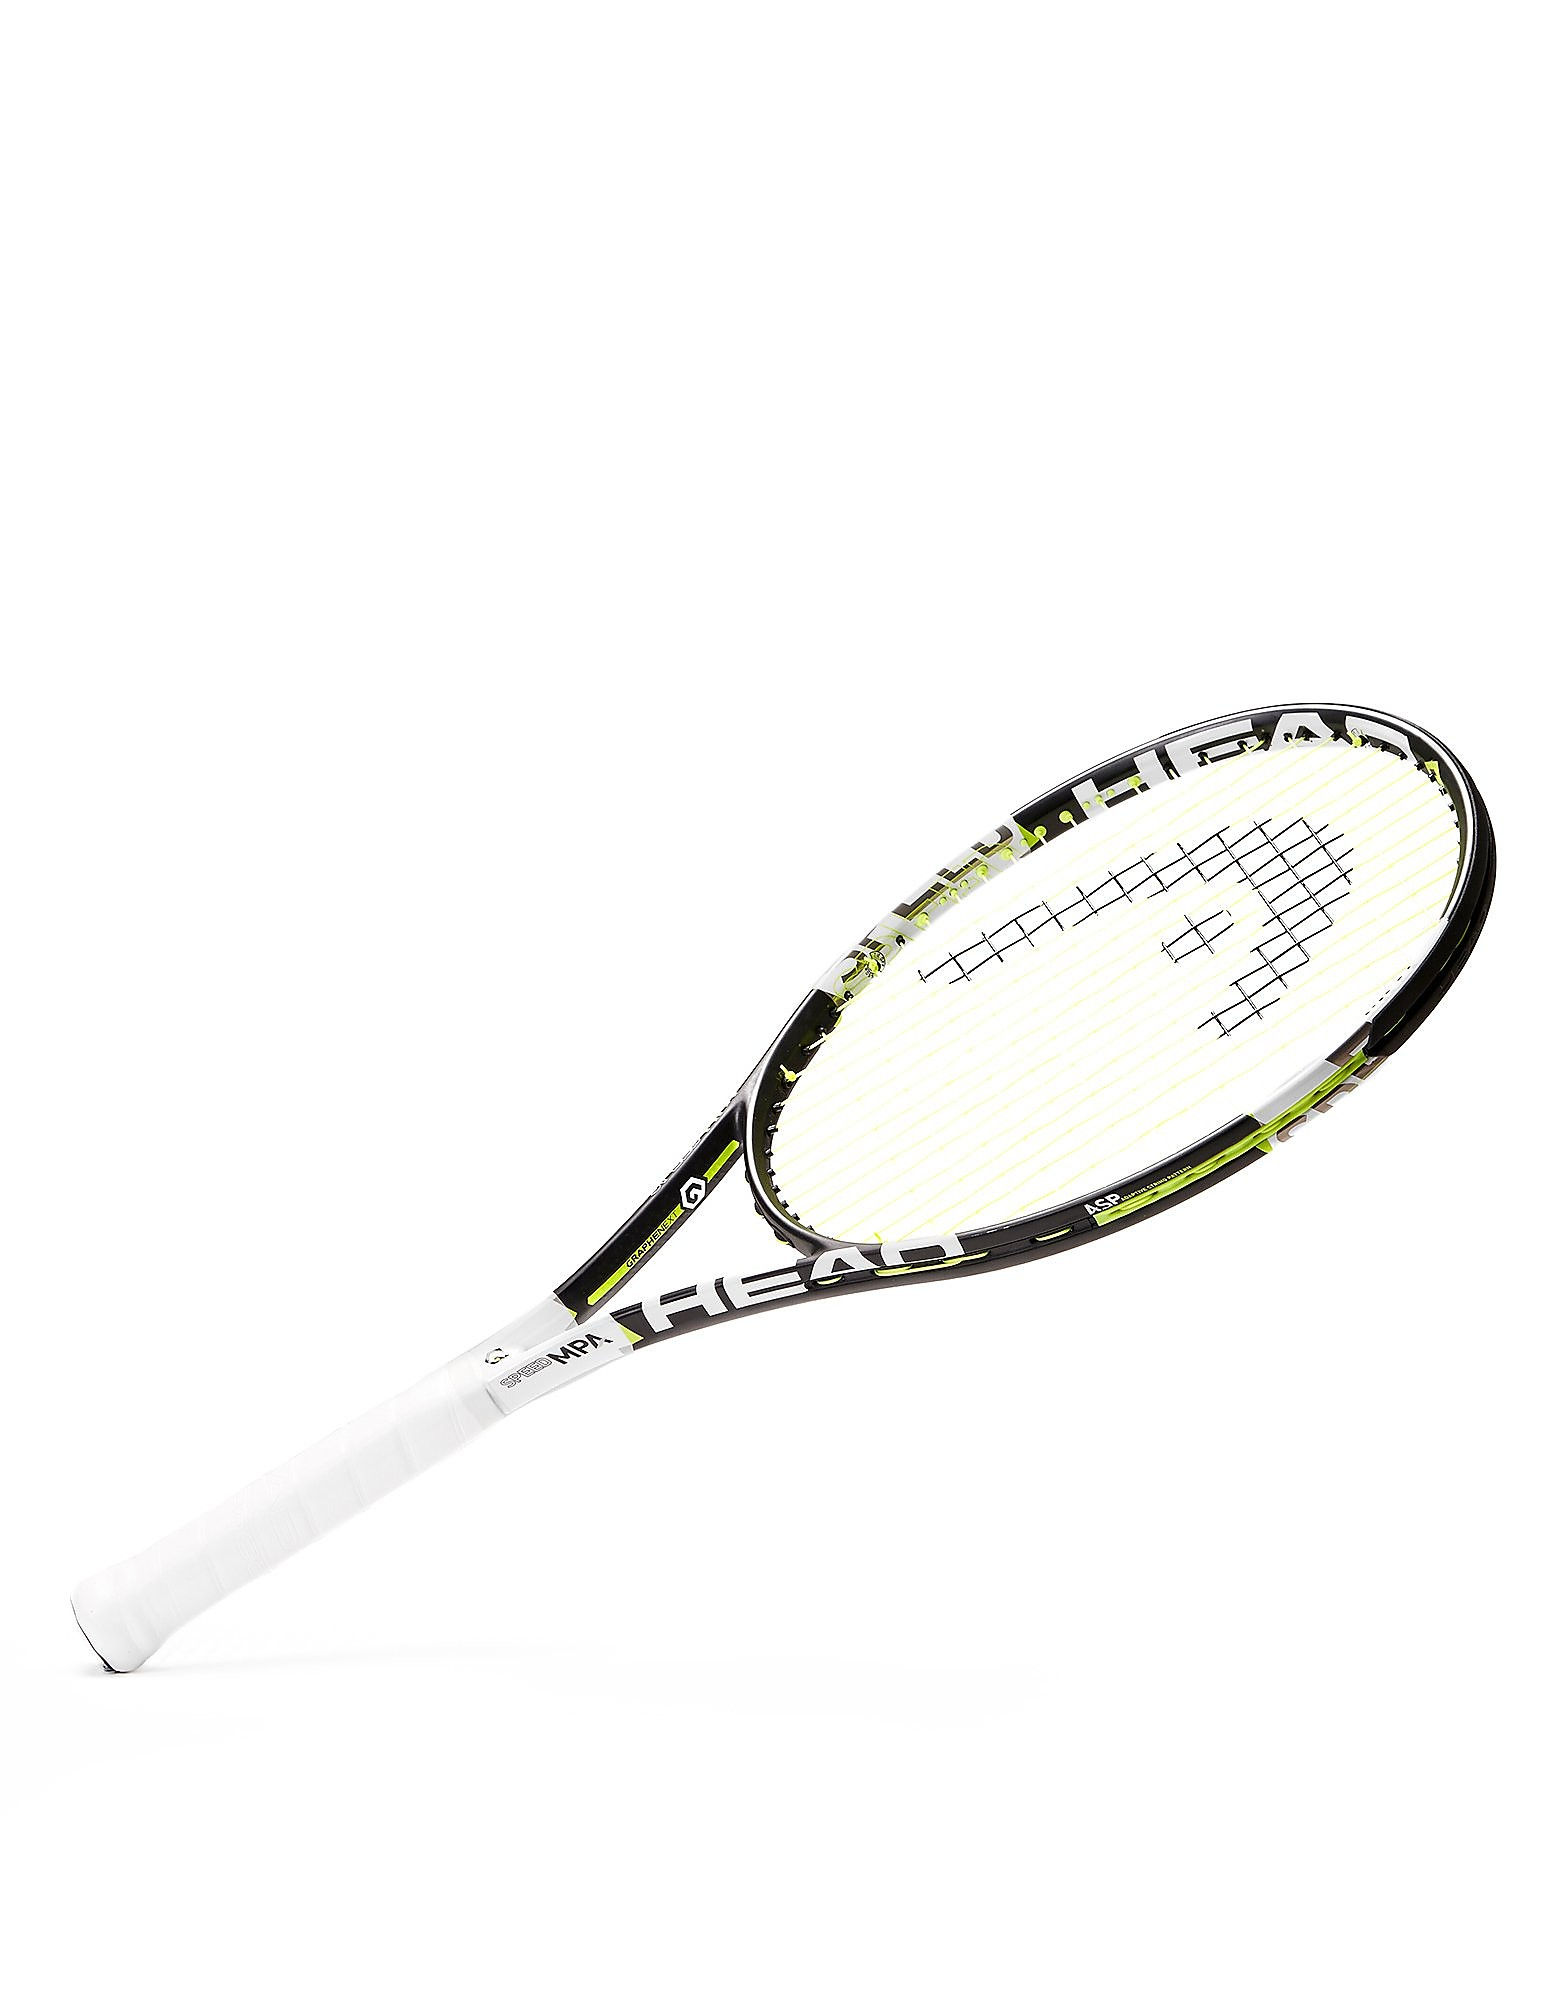 Head Graphene XT Speed MP A Tennis Racket